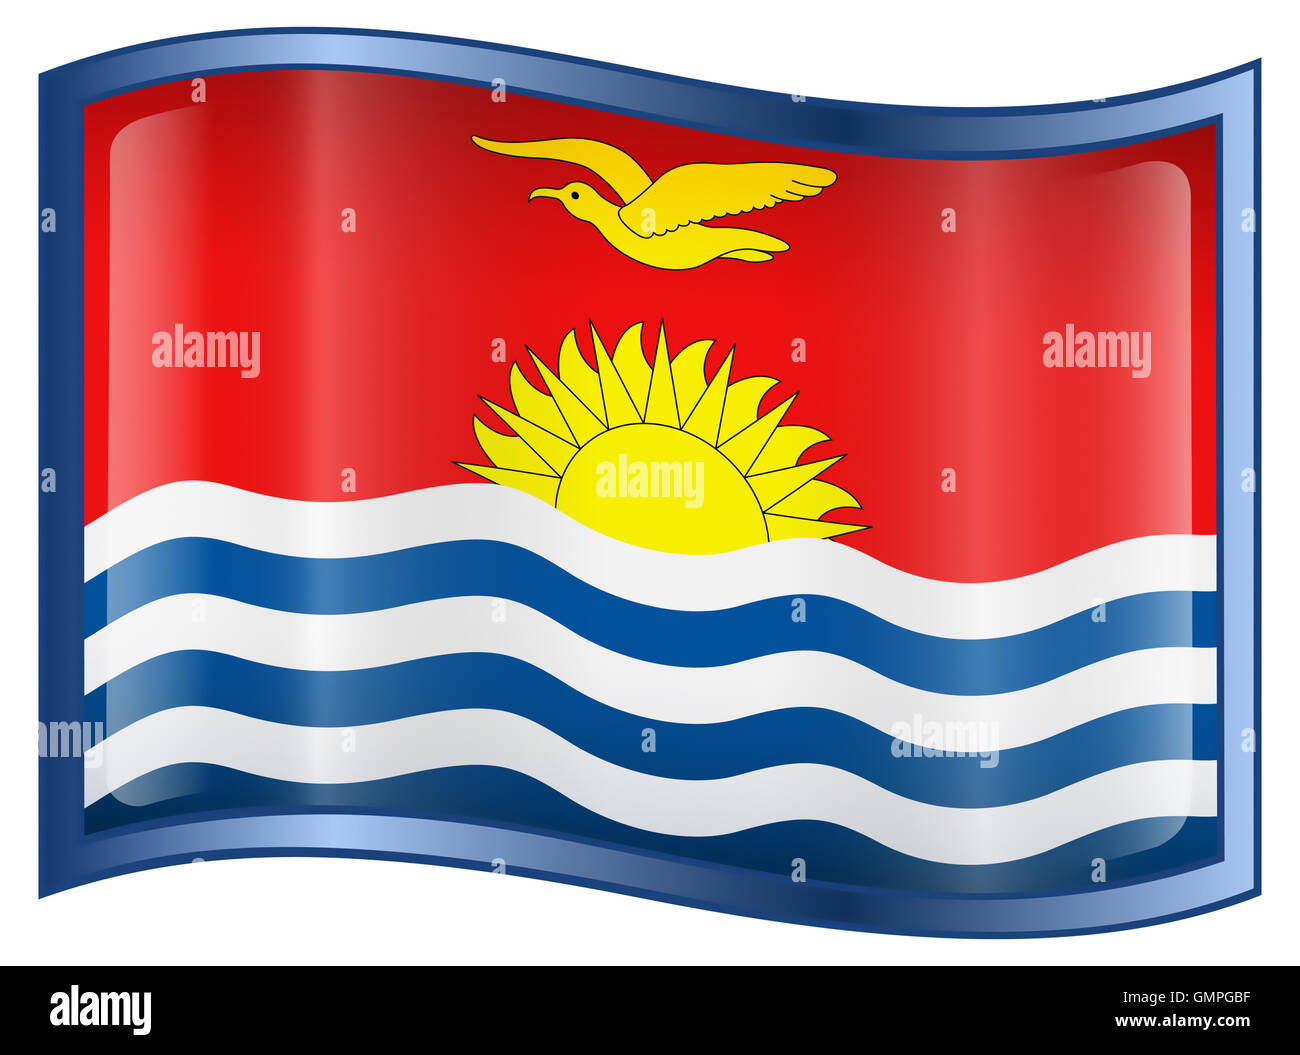 Kiribati Flag icon. - Stock Image